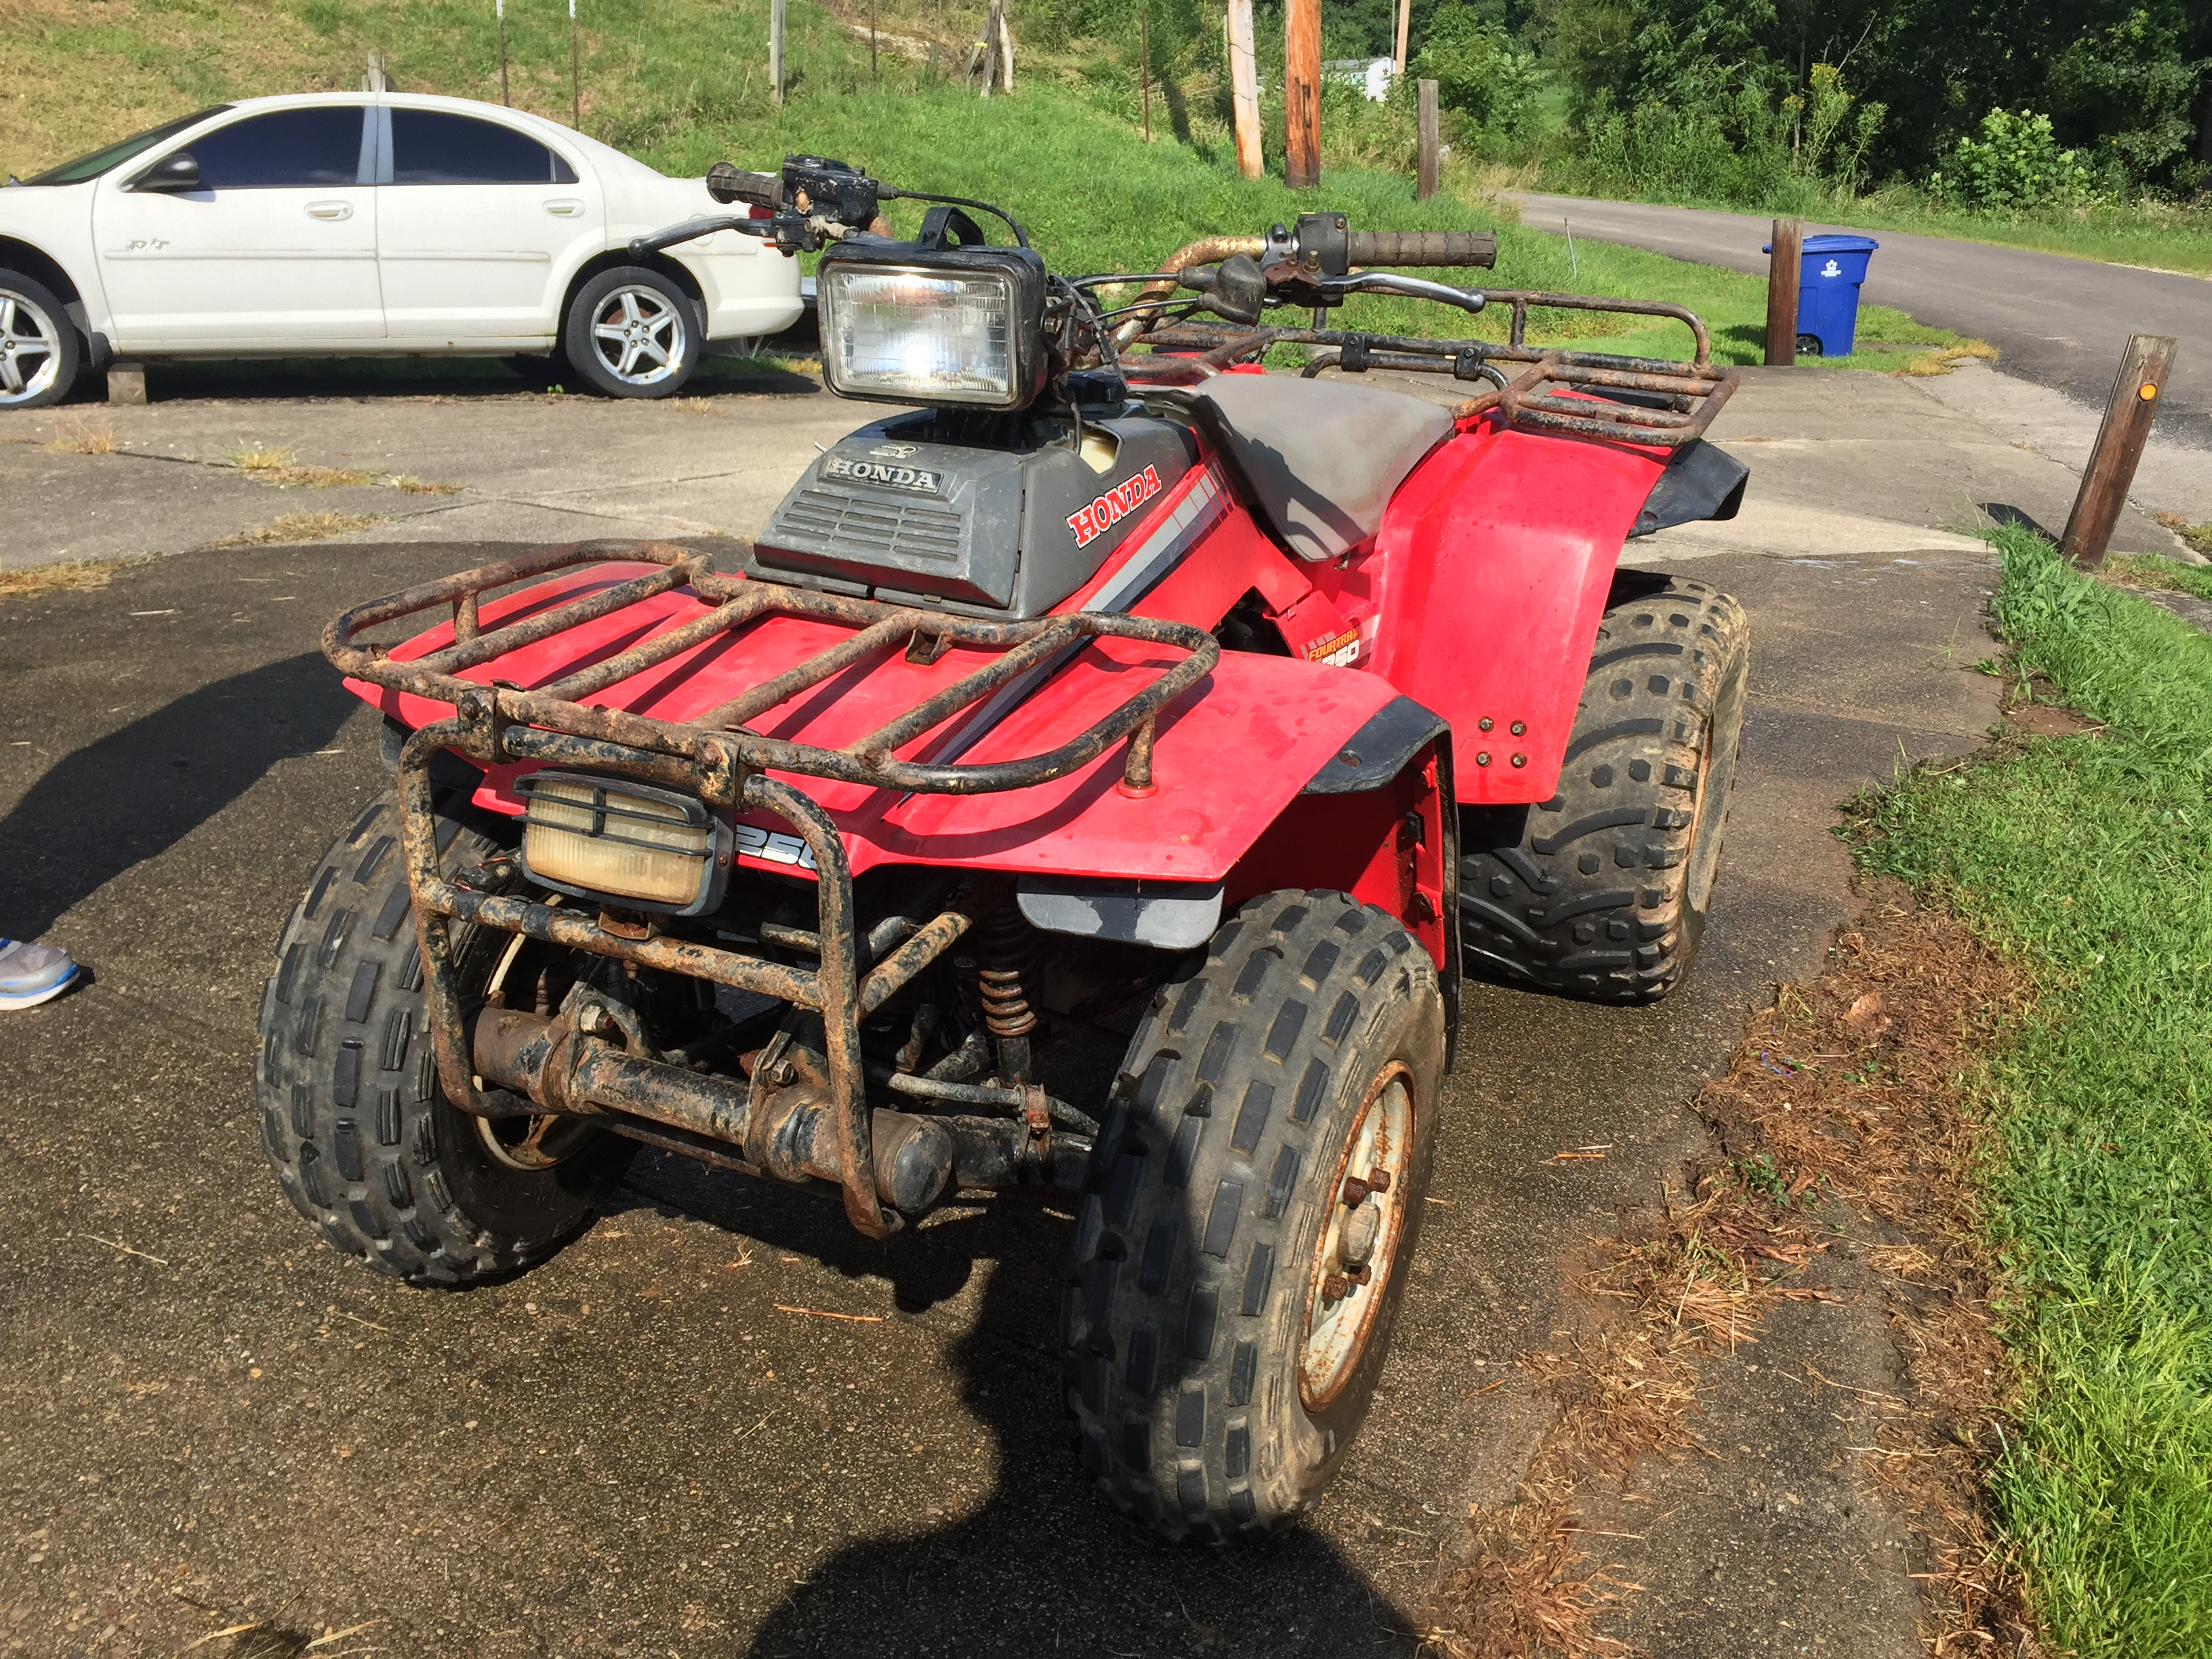 1986 honda fourtrax 250 - service manual needed